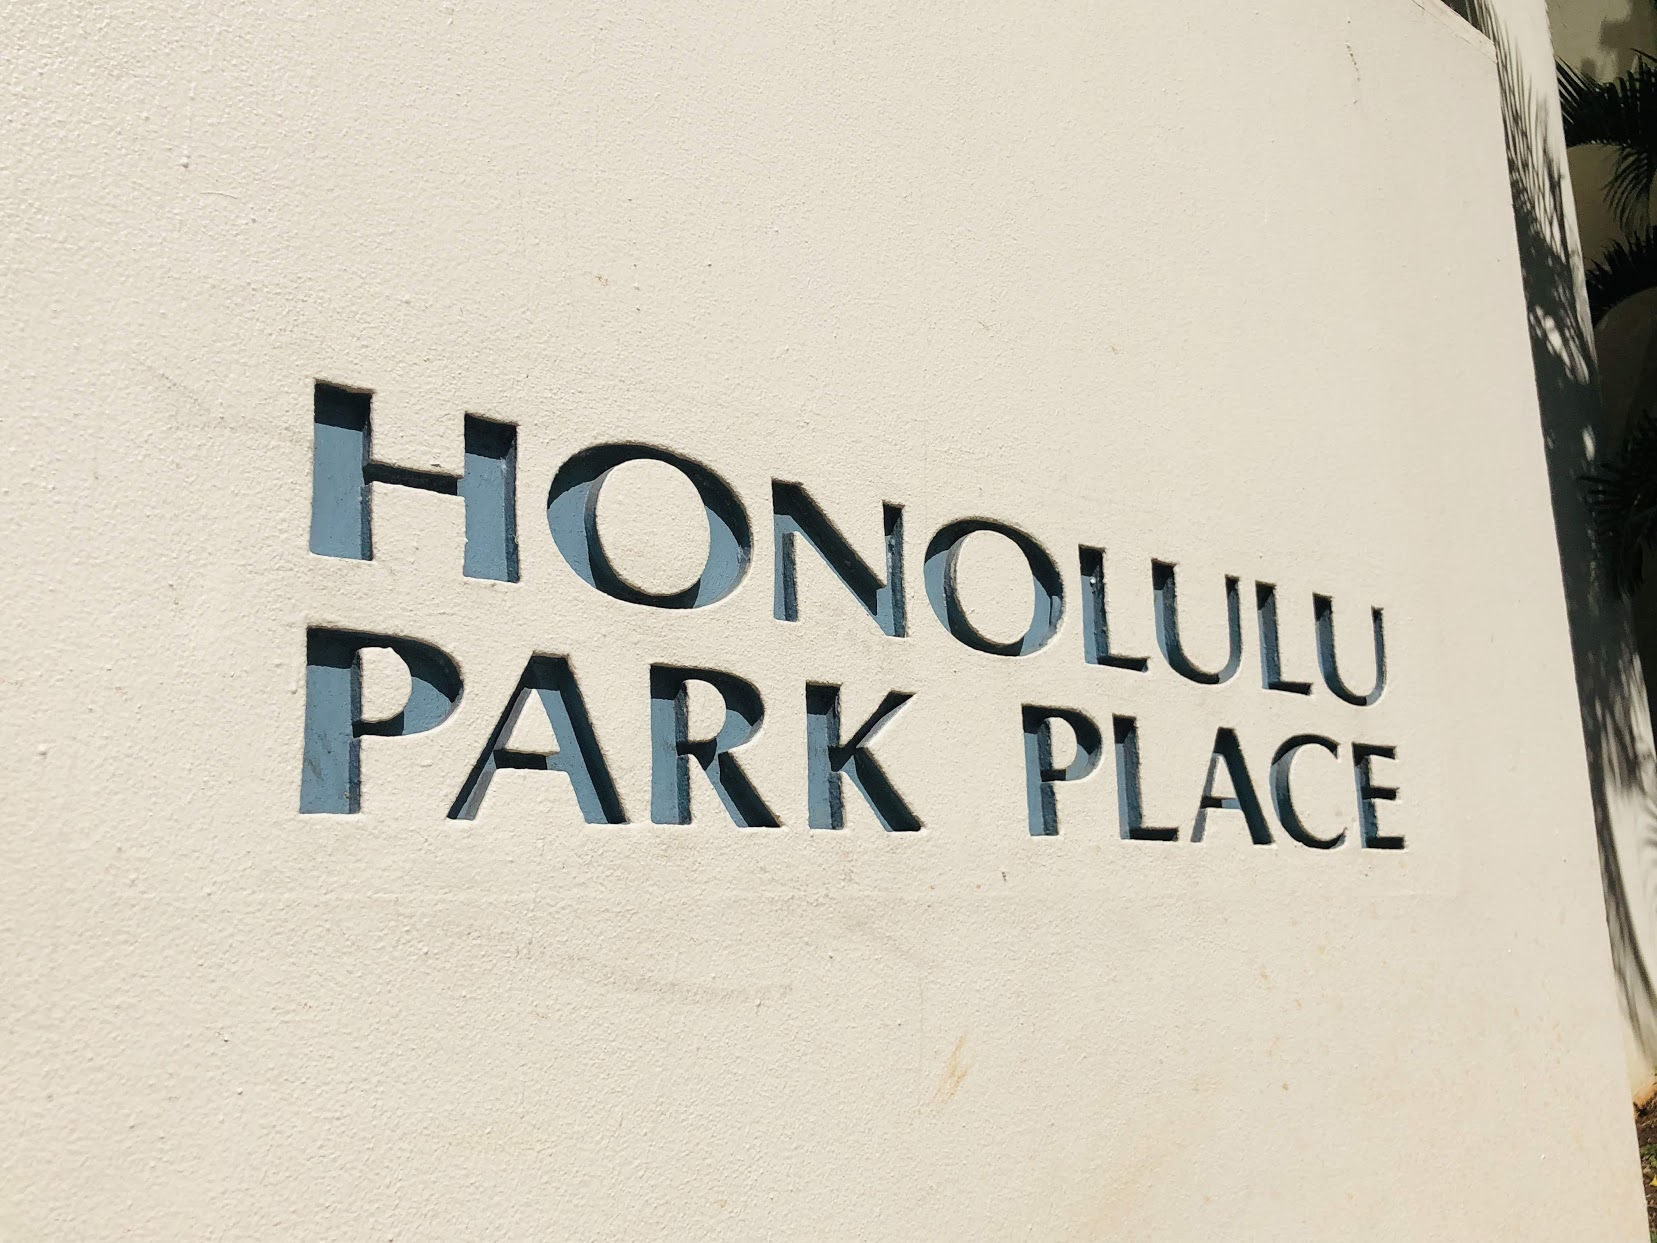 Honolulu Park Placeの看板